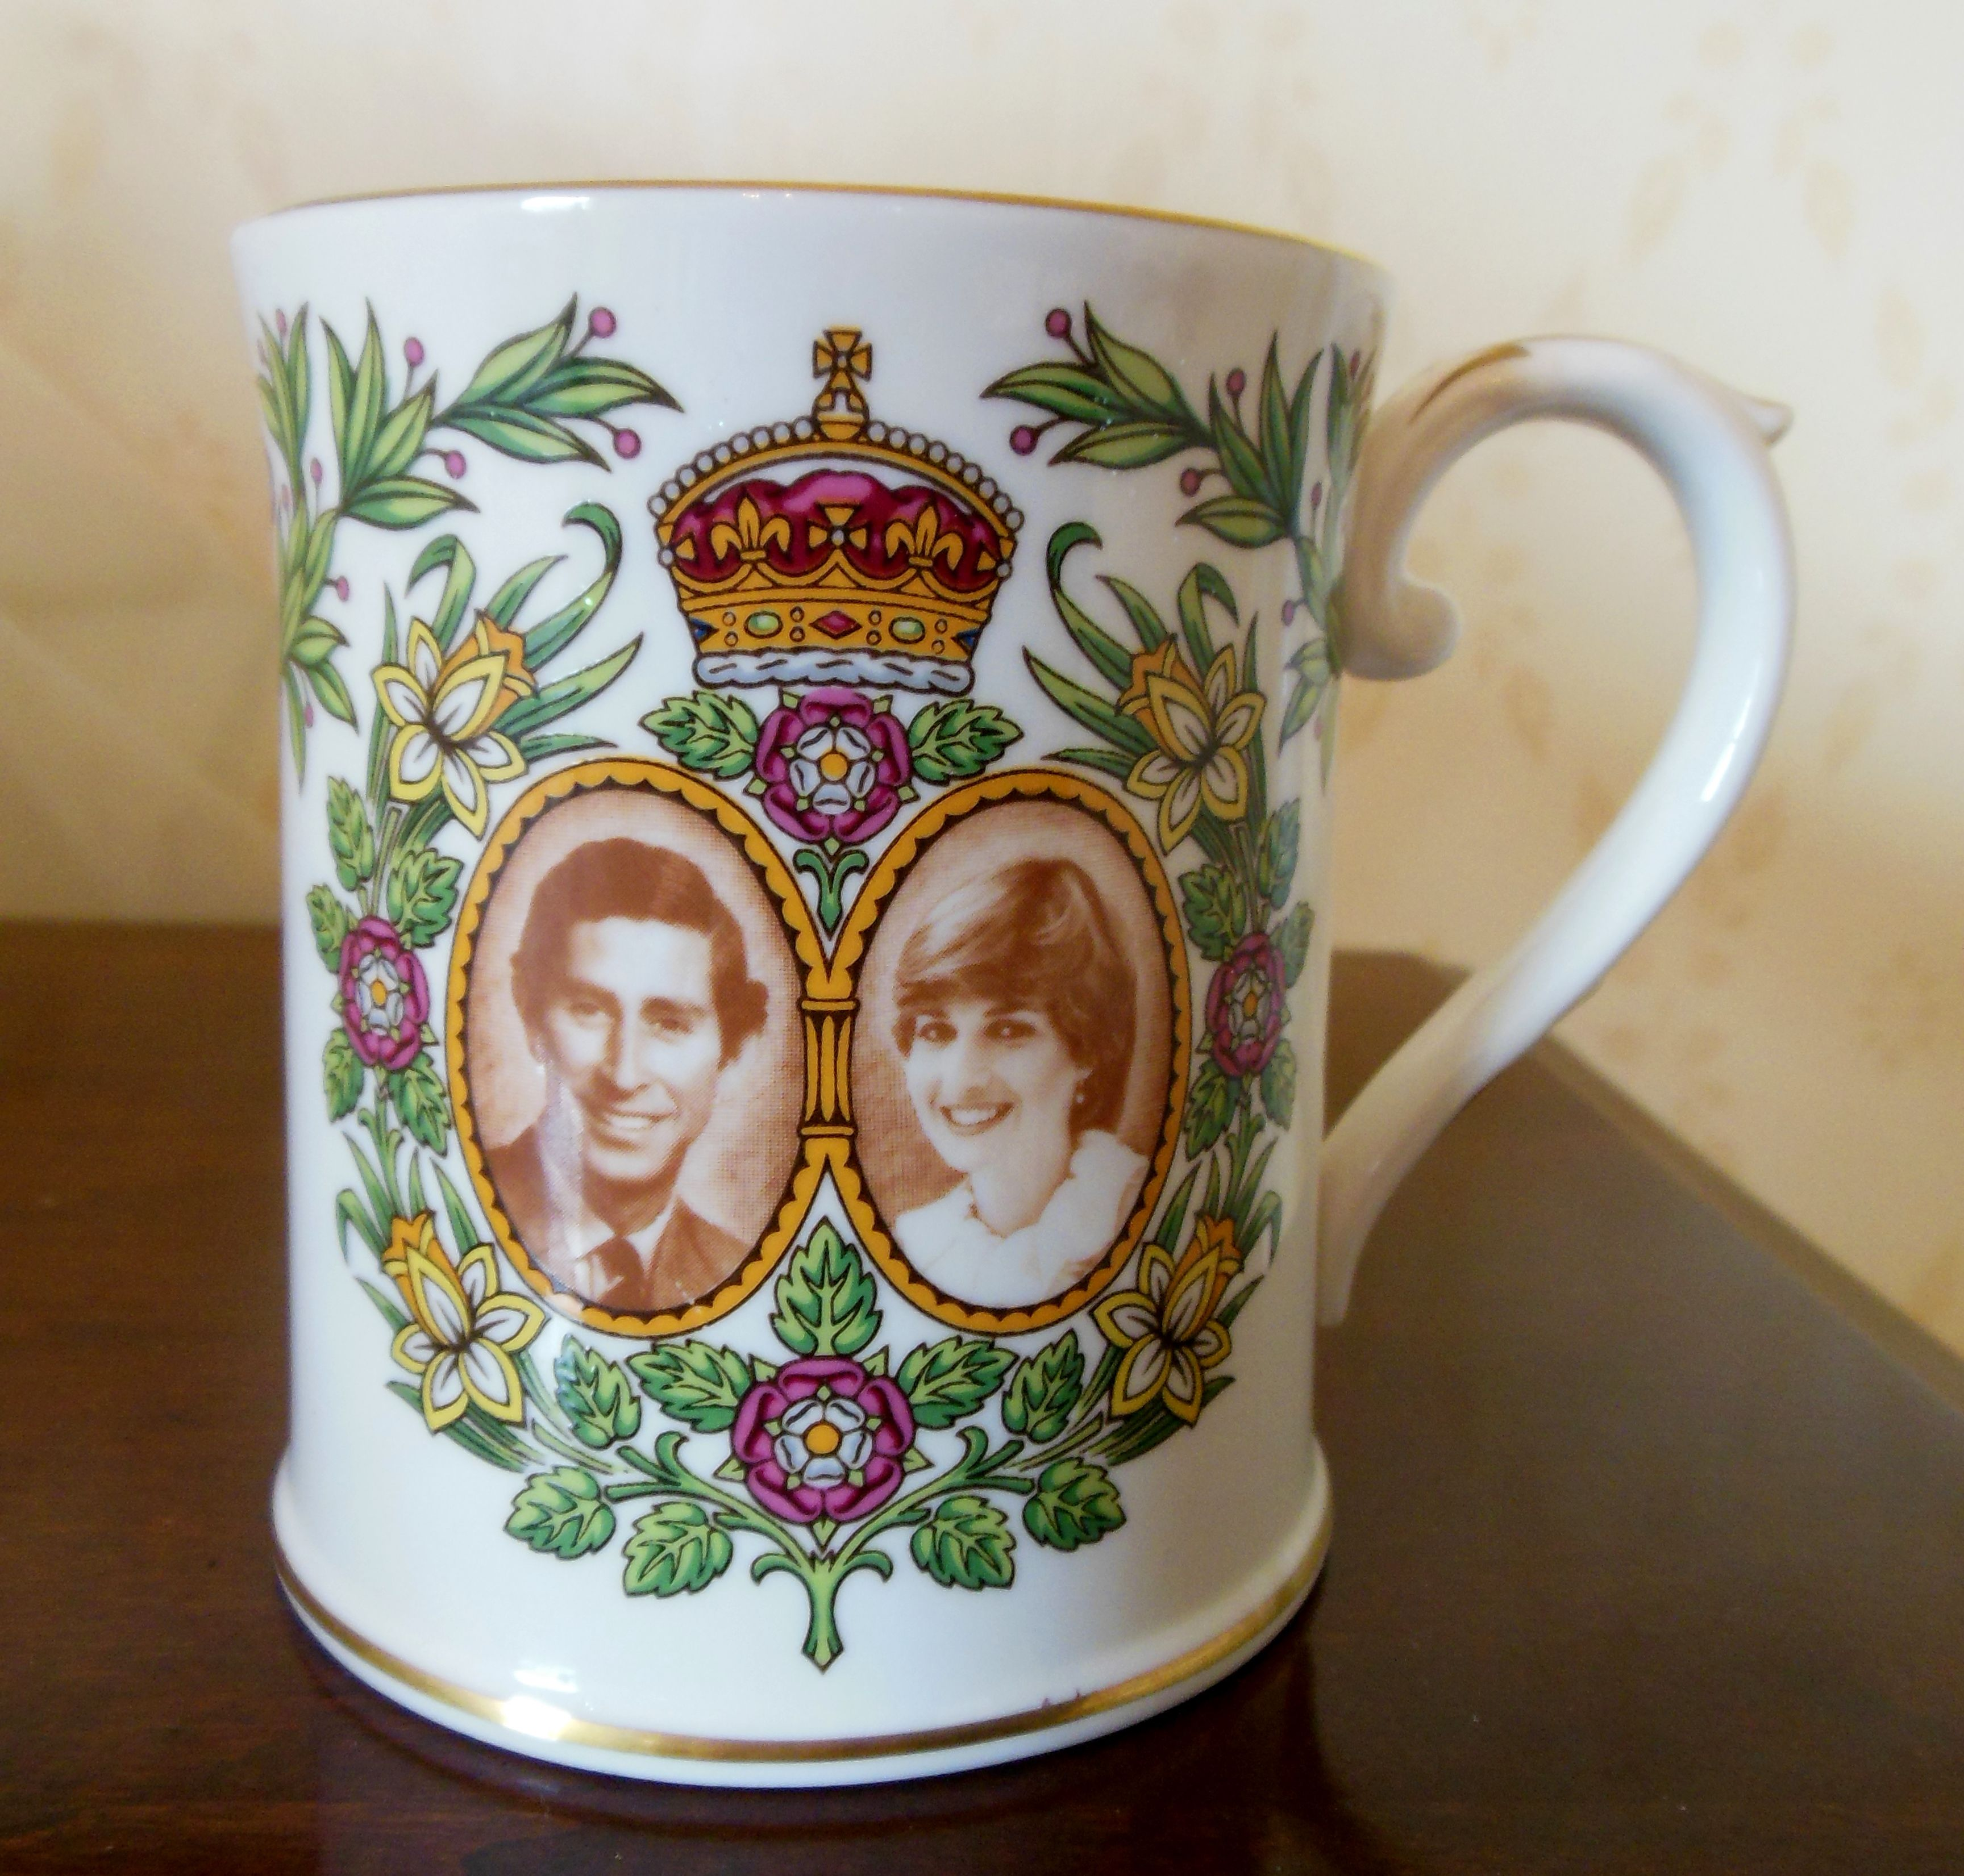 Shopkeepers obviously enjoyed creating window displays of royal wedding souvenirs. Many of them were just beautiful.